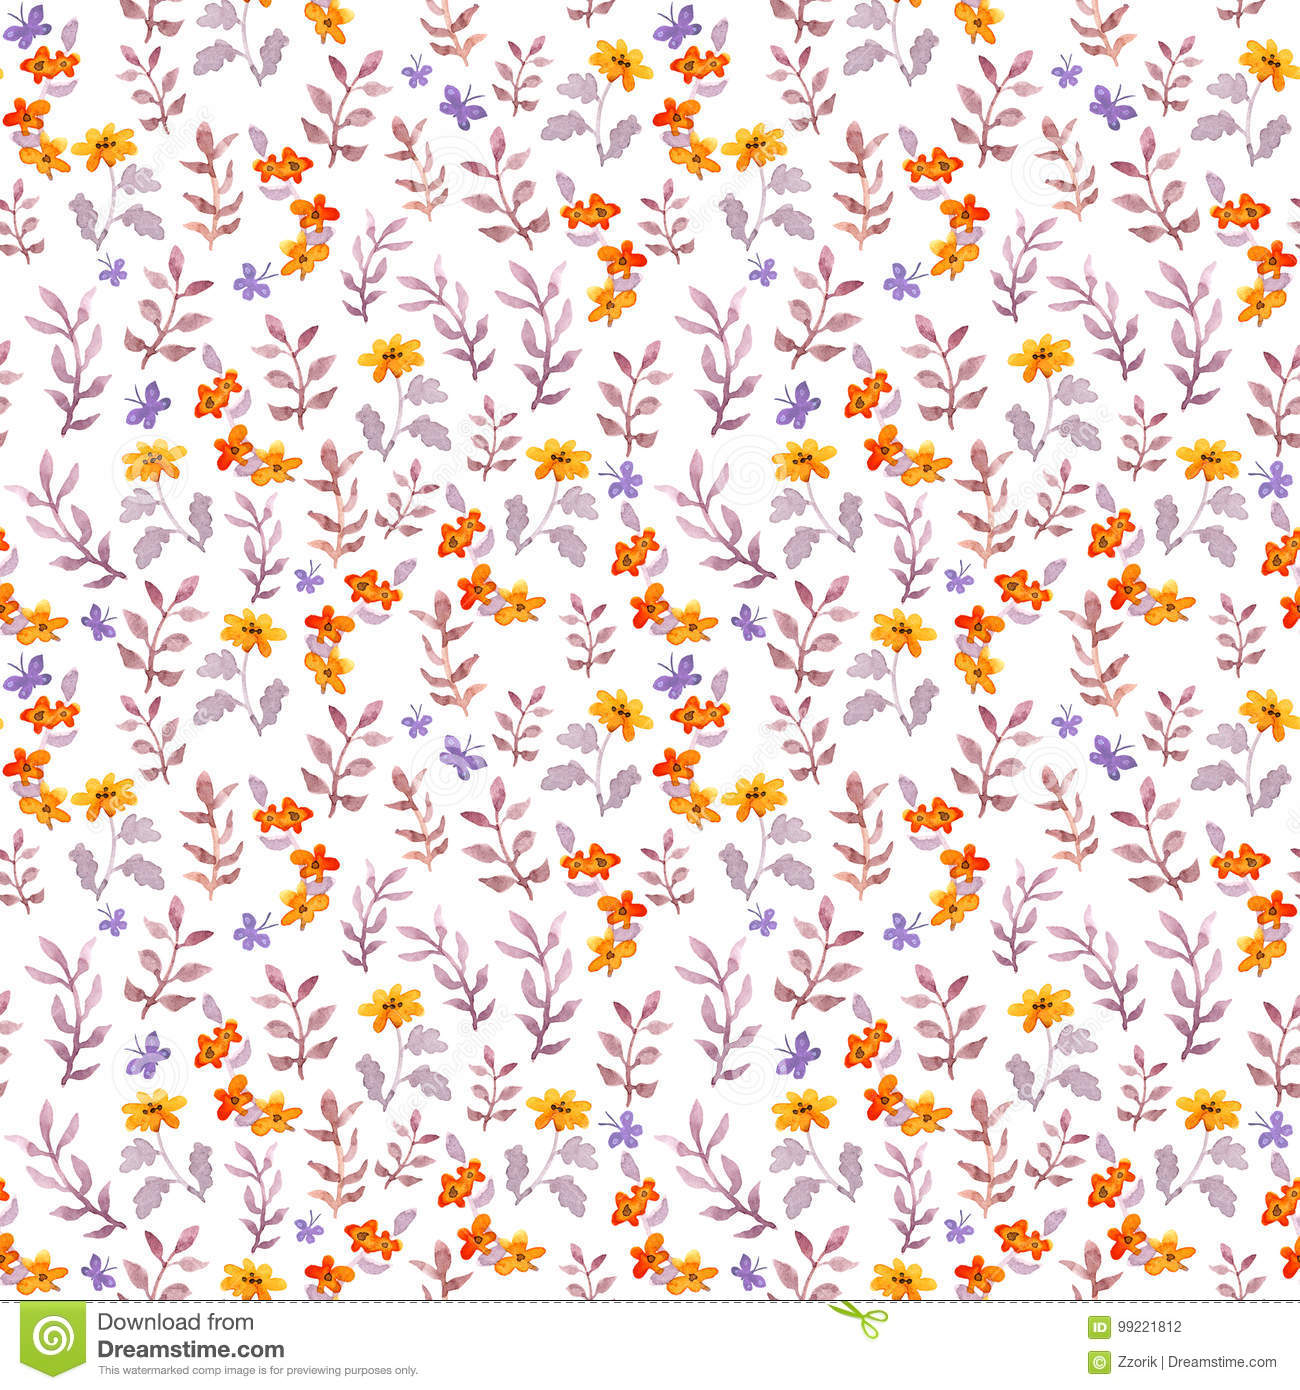 Seamless retro decorative floral swatch. Cute flowers, leaves and retro butterflies. Aquarelle